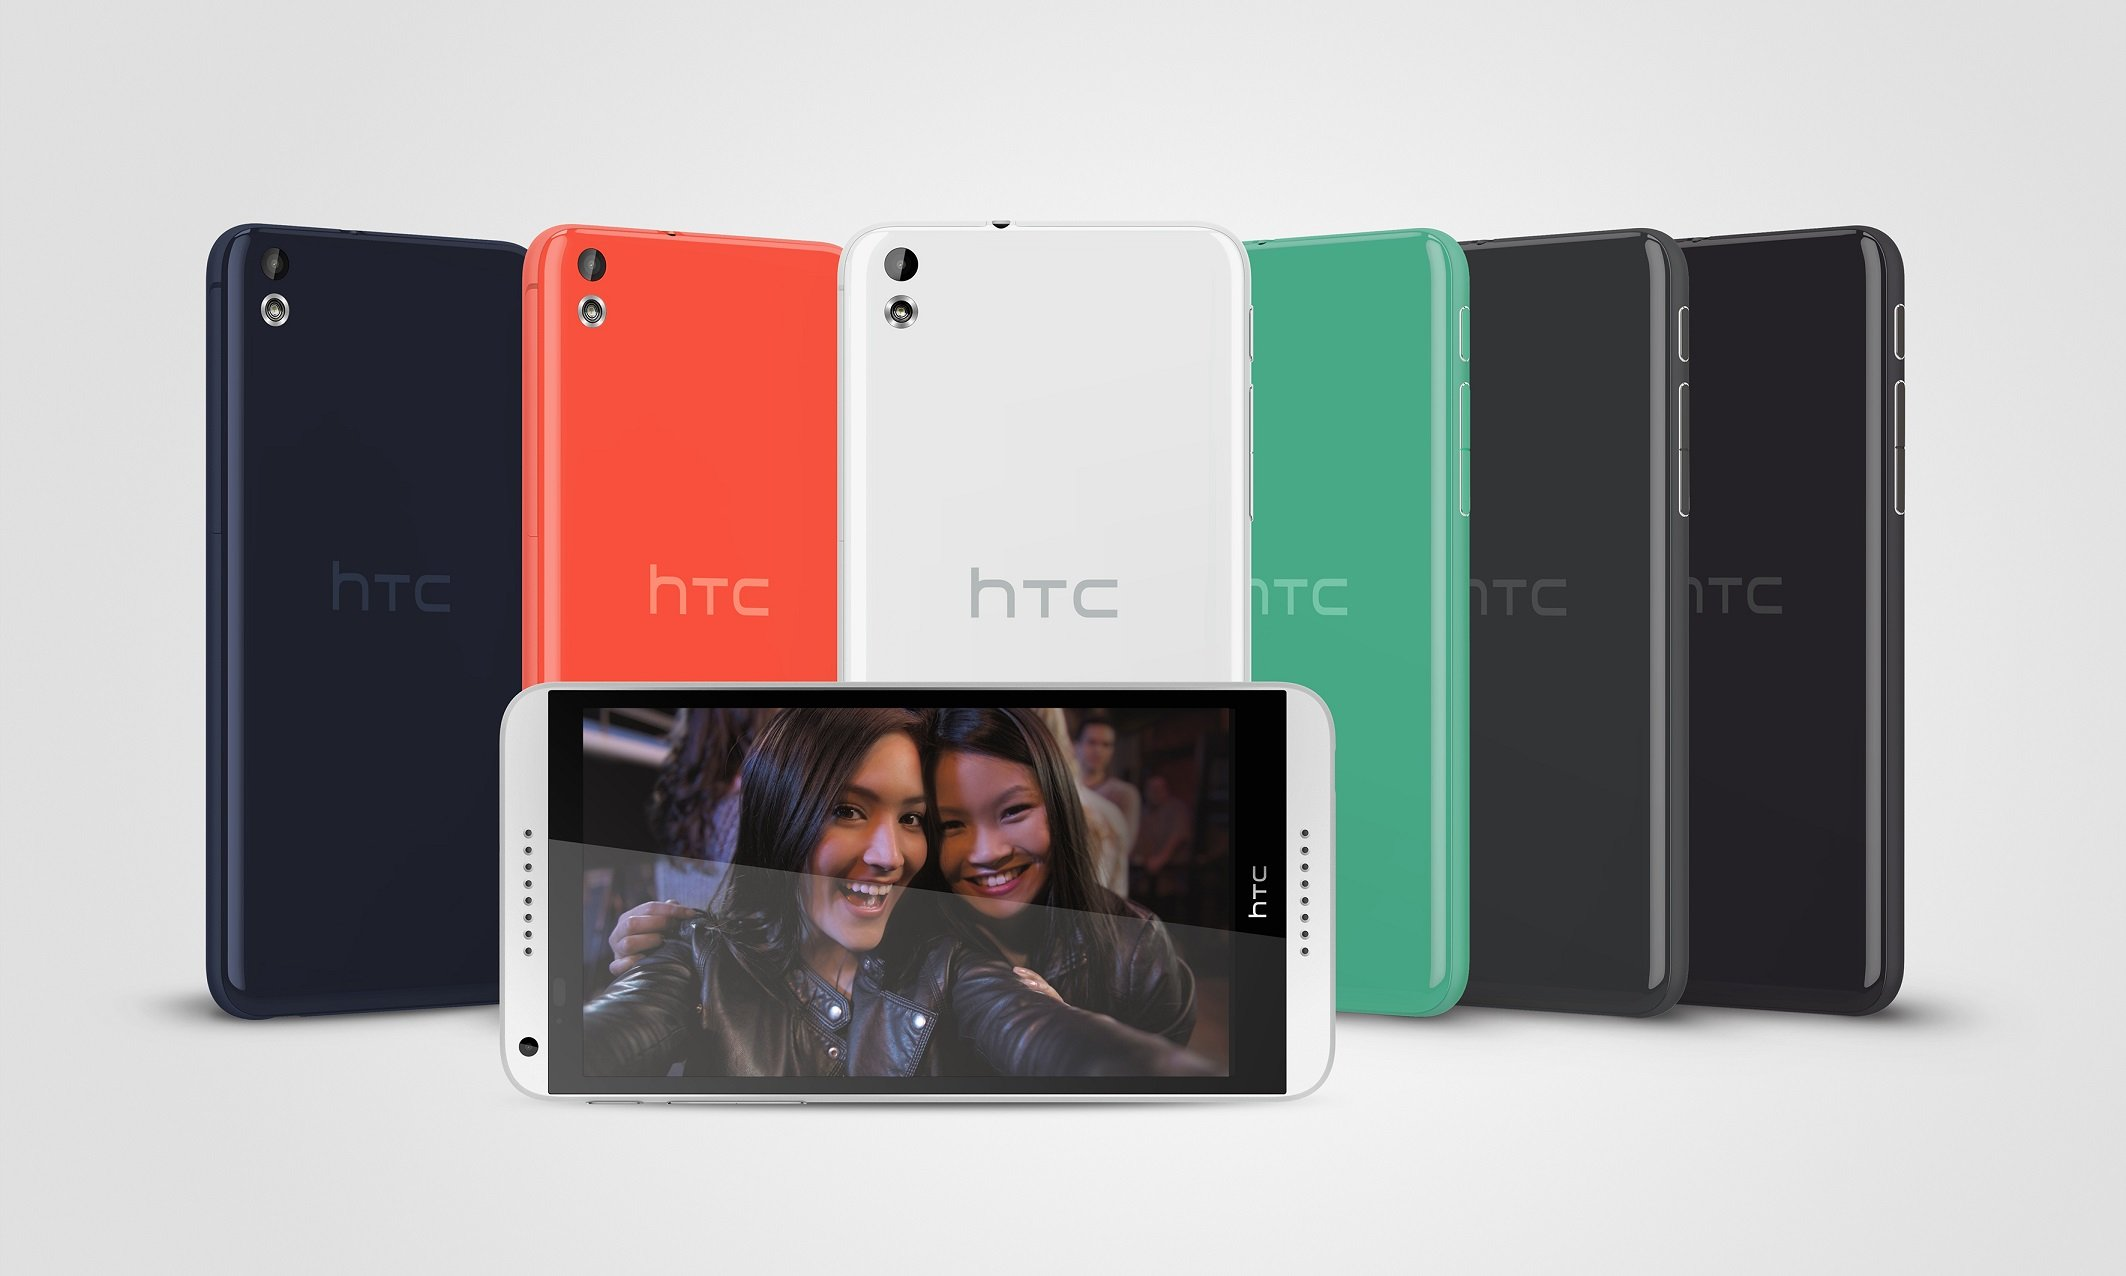 Review: HTC Desire 816